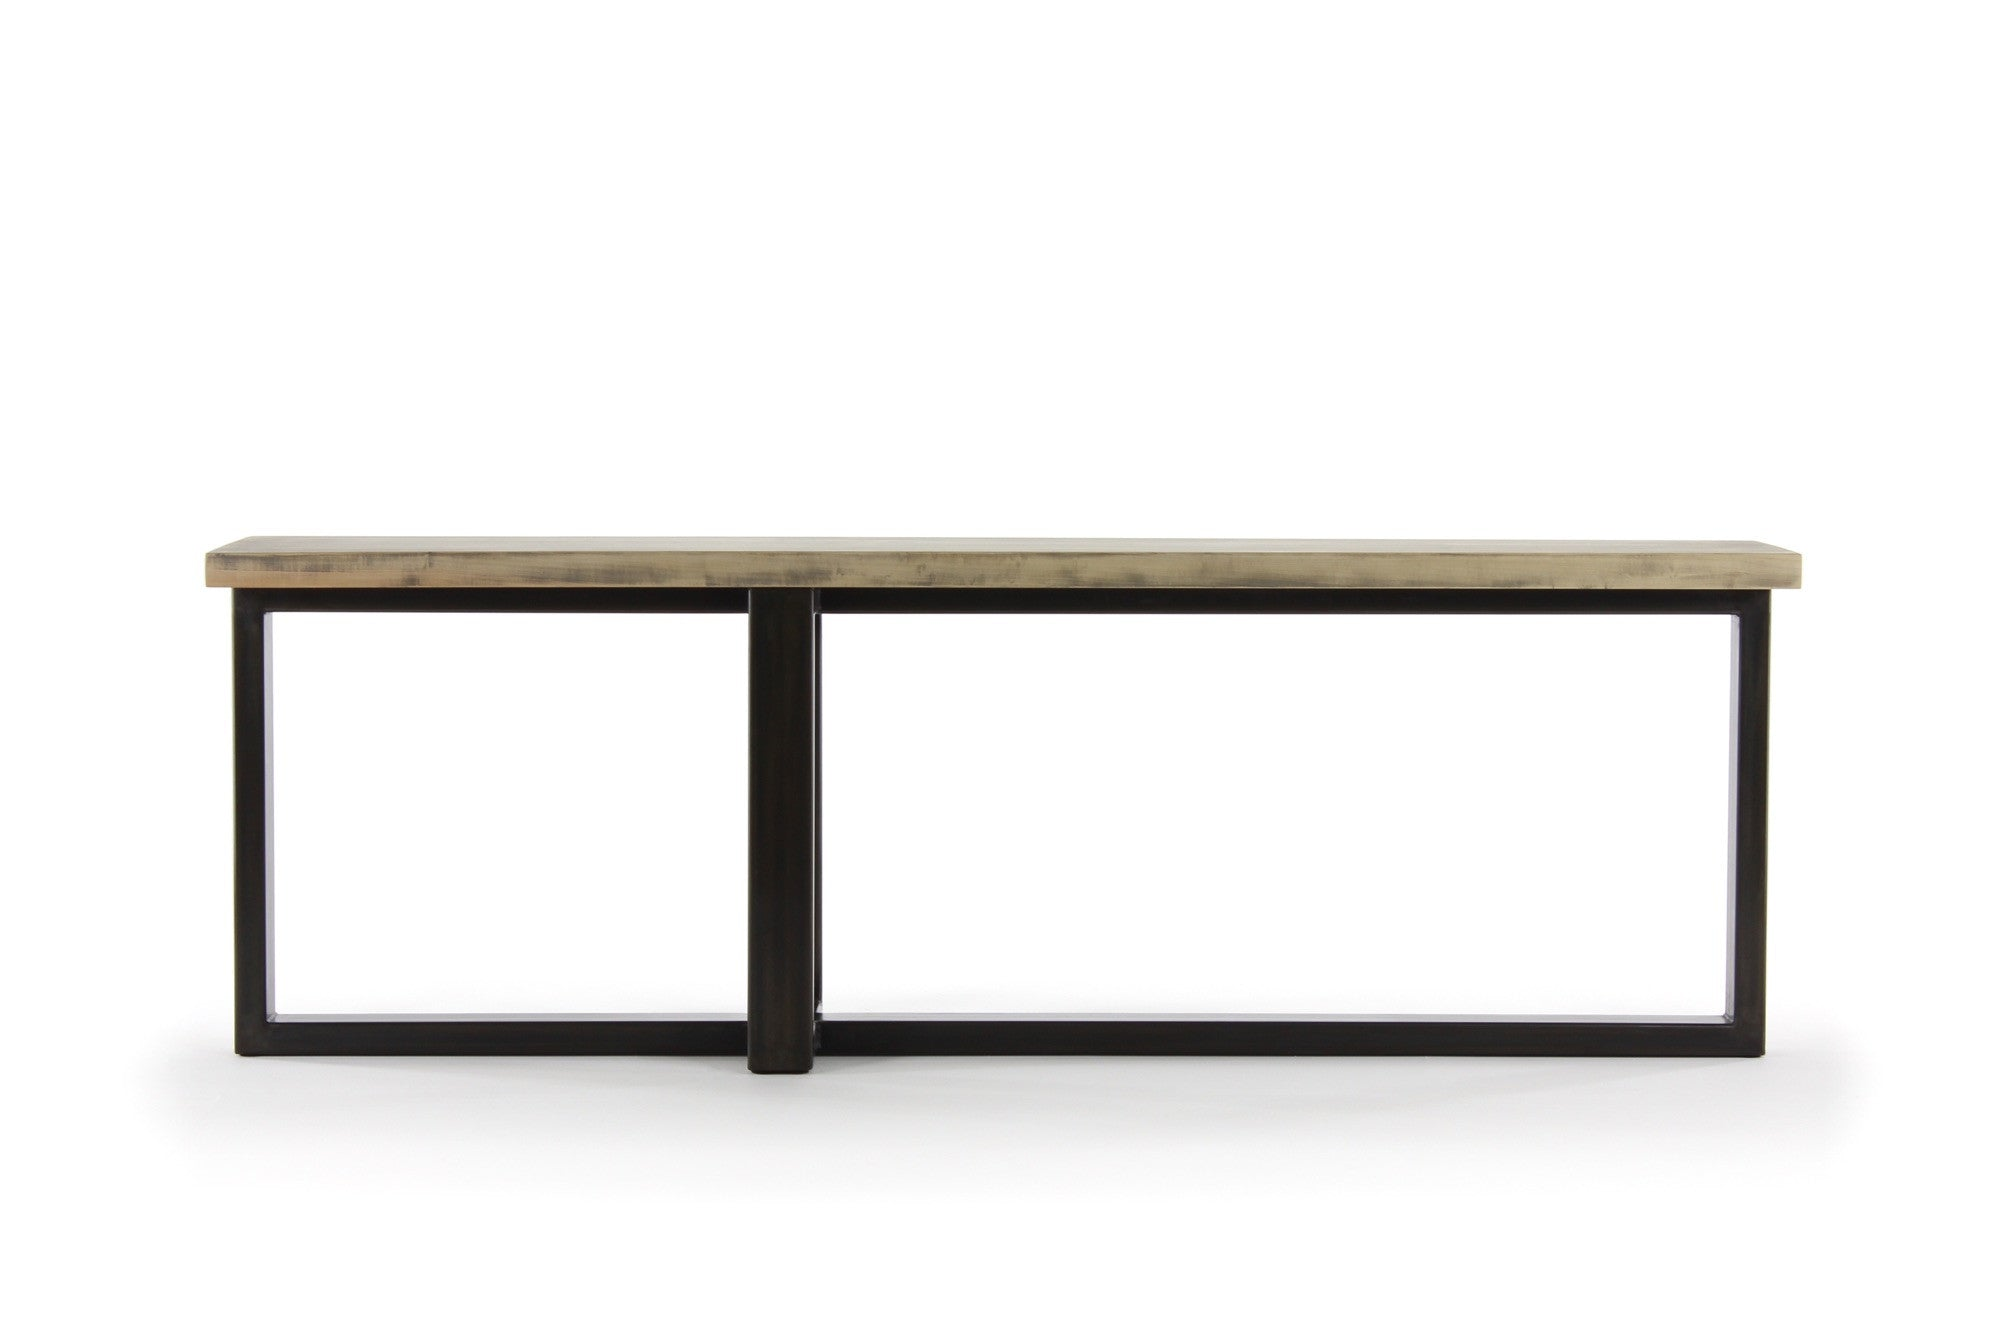 Industrial modern concord console table seventeen20 8 concord console table worn maple wood finish with waxed steel geotapseo Image collections